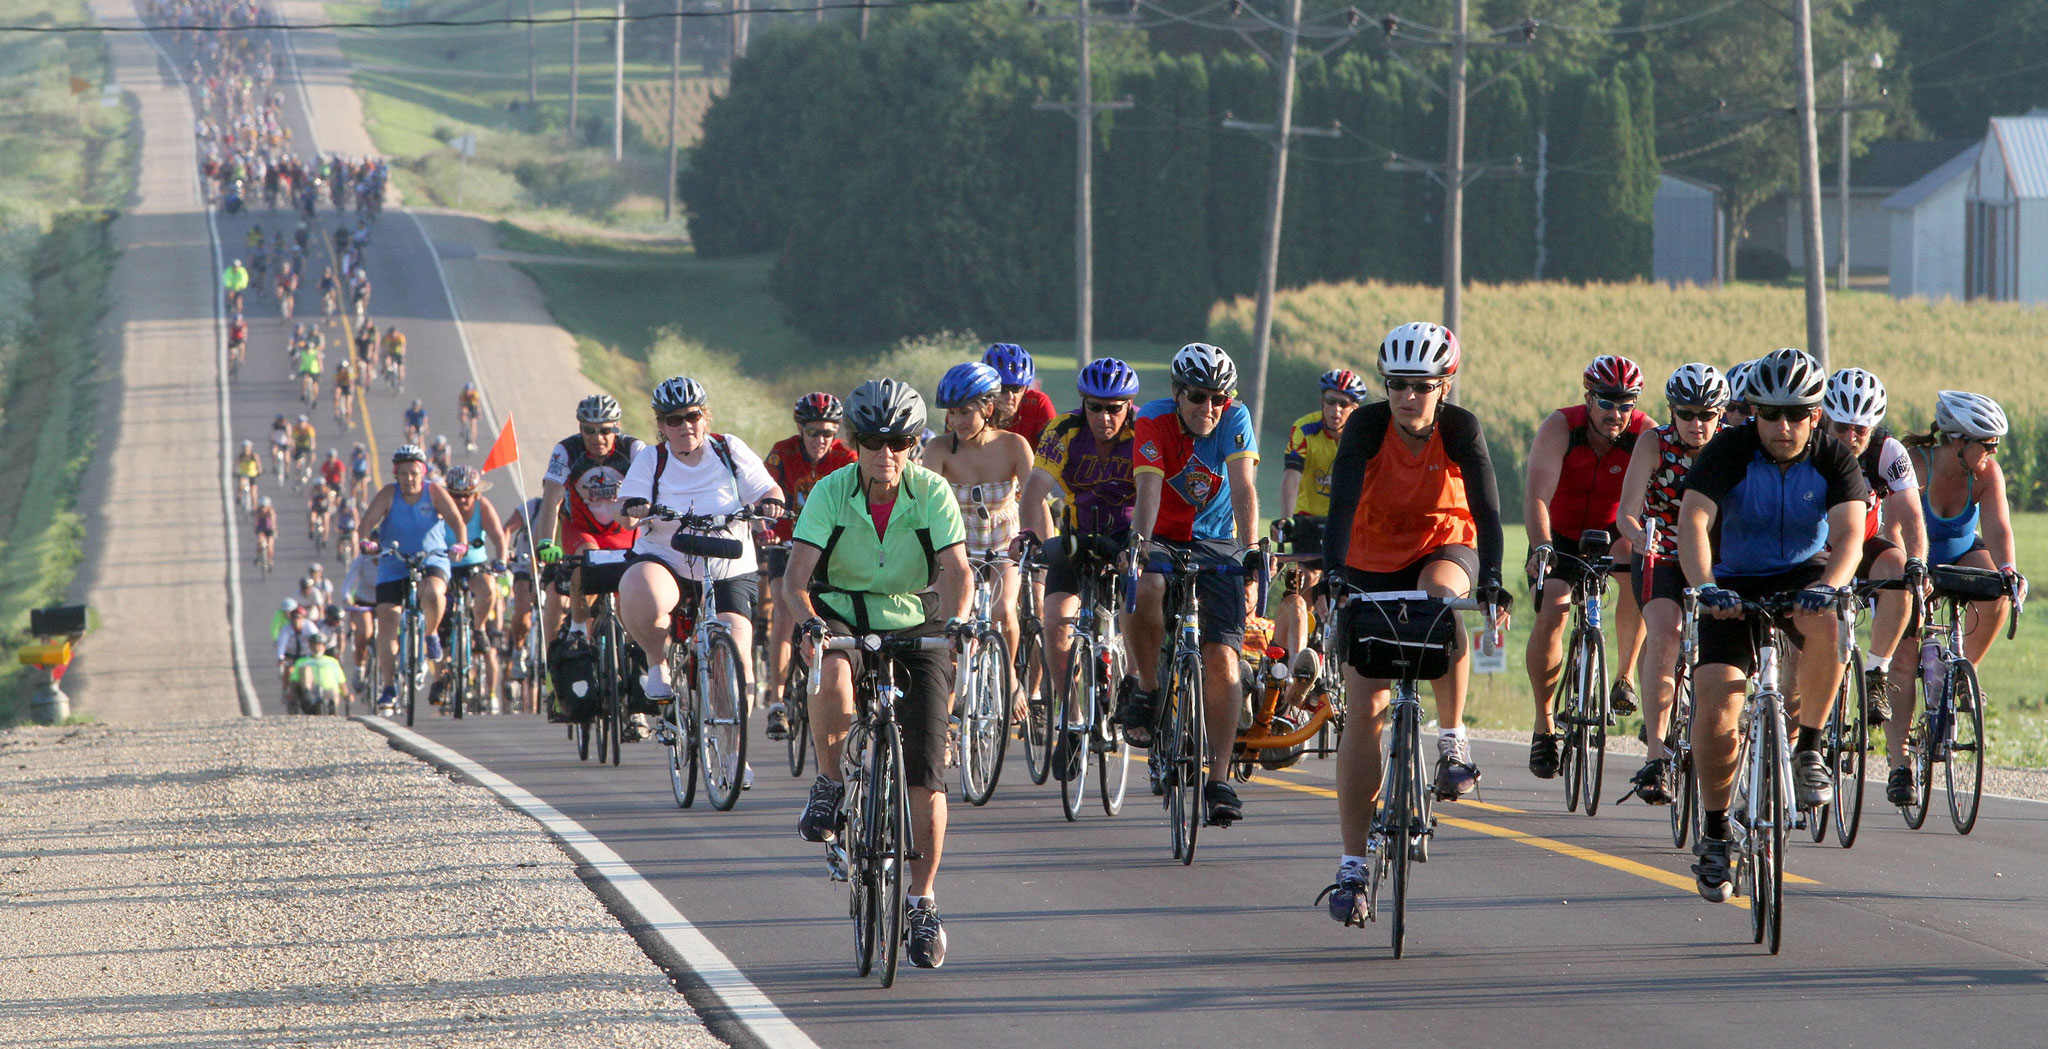 Lake Country Cyclists – Recreation, Education, & Safety